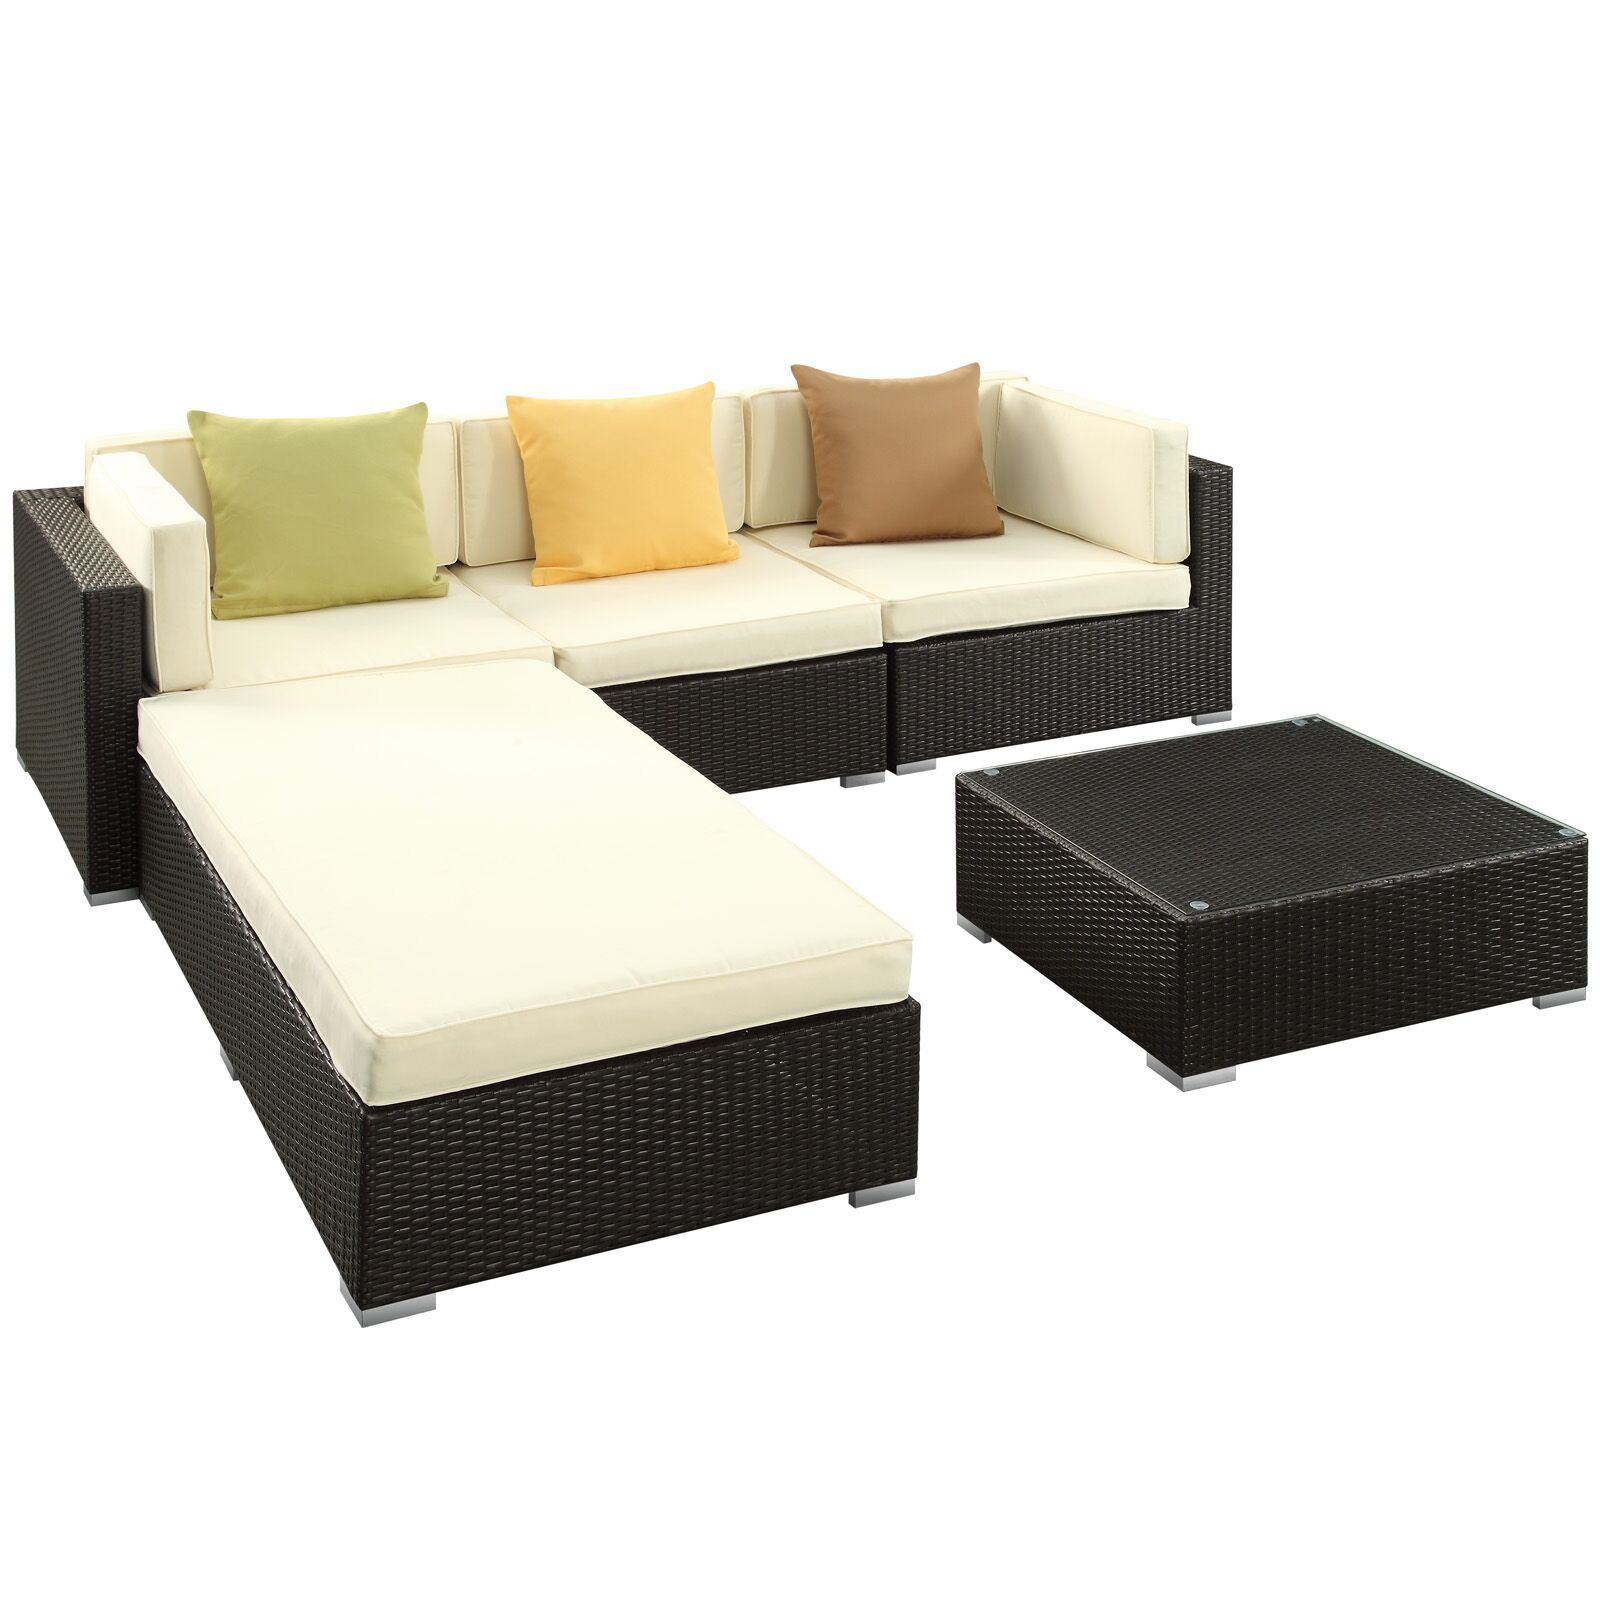 Lambid 5 Piece Rattan Sectional Set with Cushions